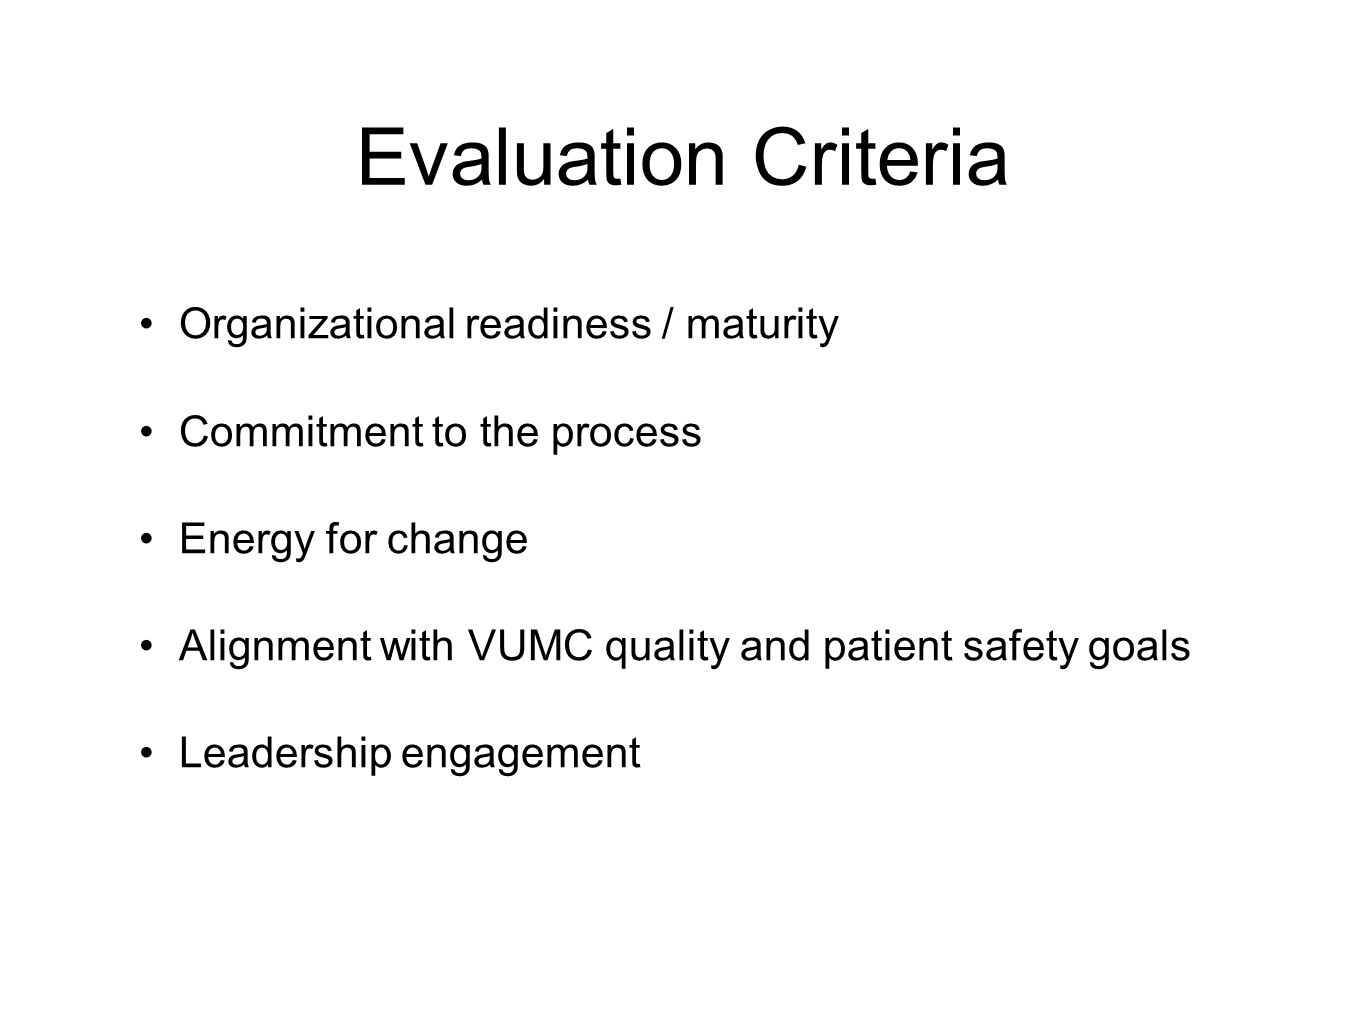 Evaluation Criteria Organizational readiness / maturity Commitment to the process Energy for change Alignment with VUMC quality and patient safety goals Leadership engagement